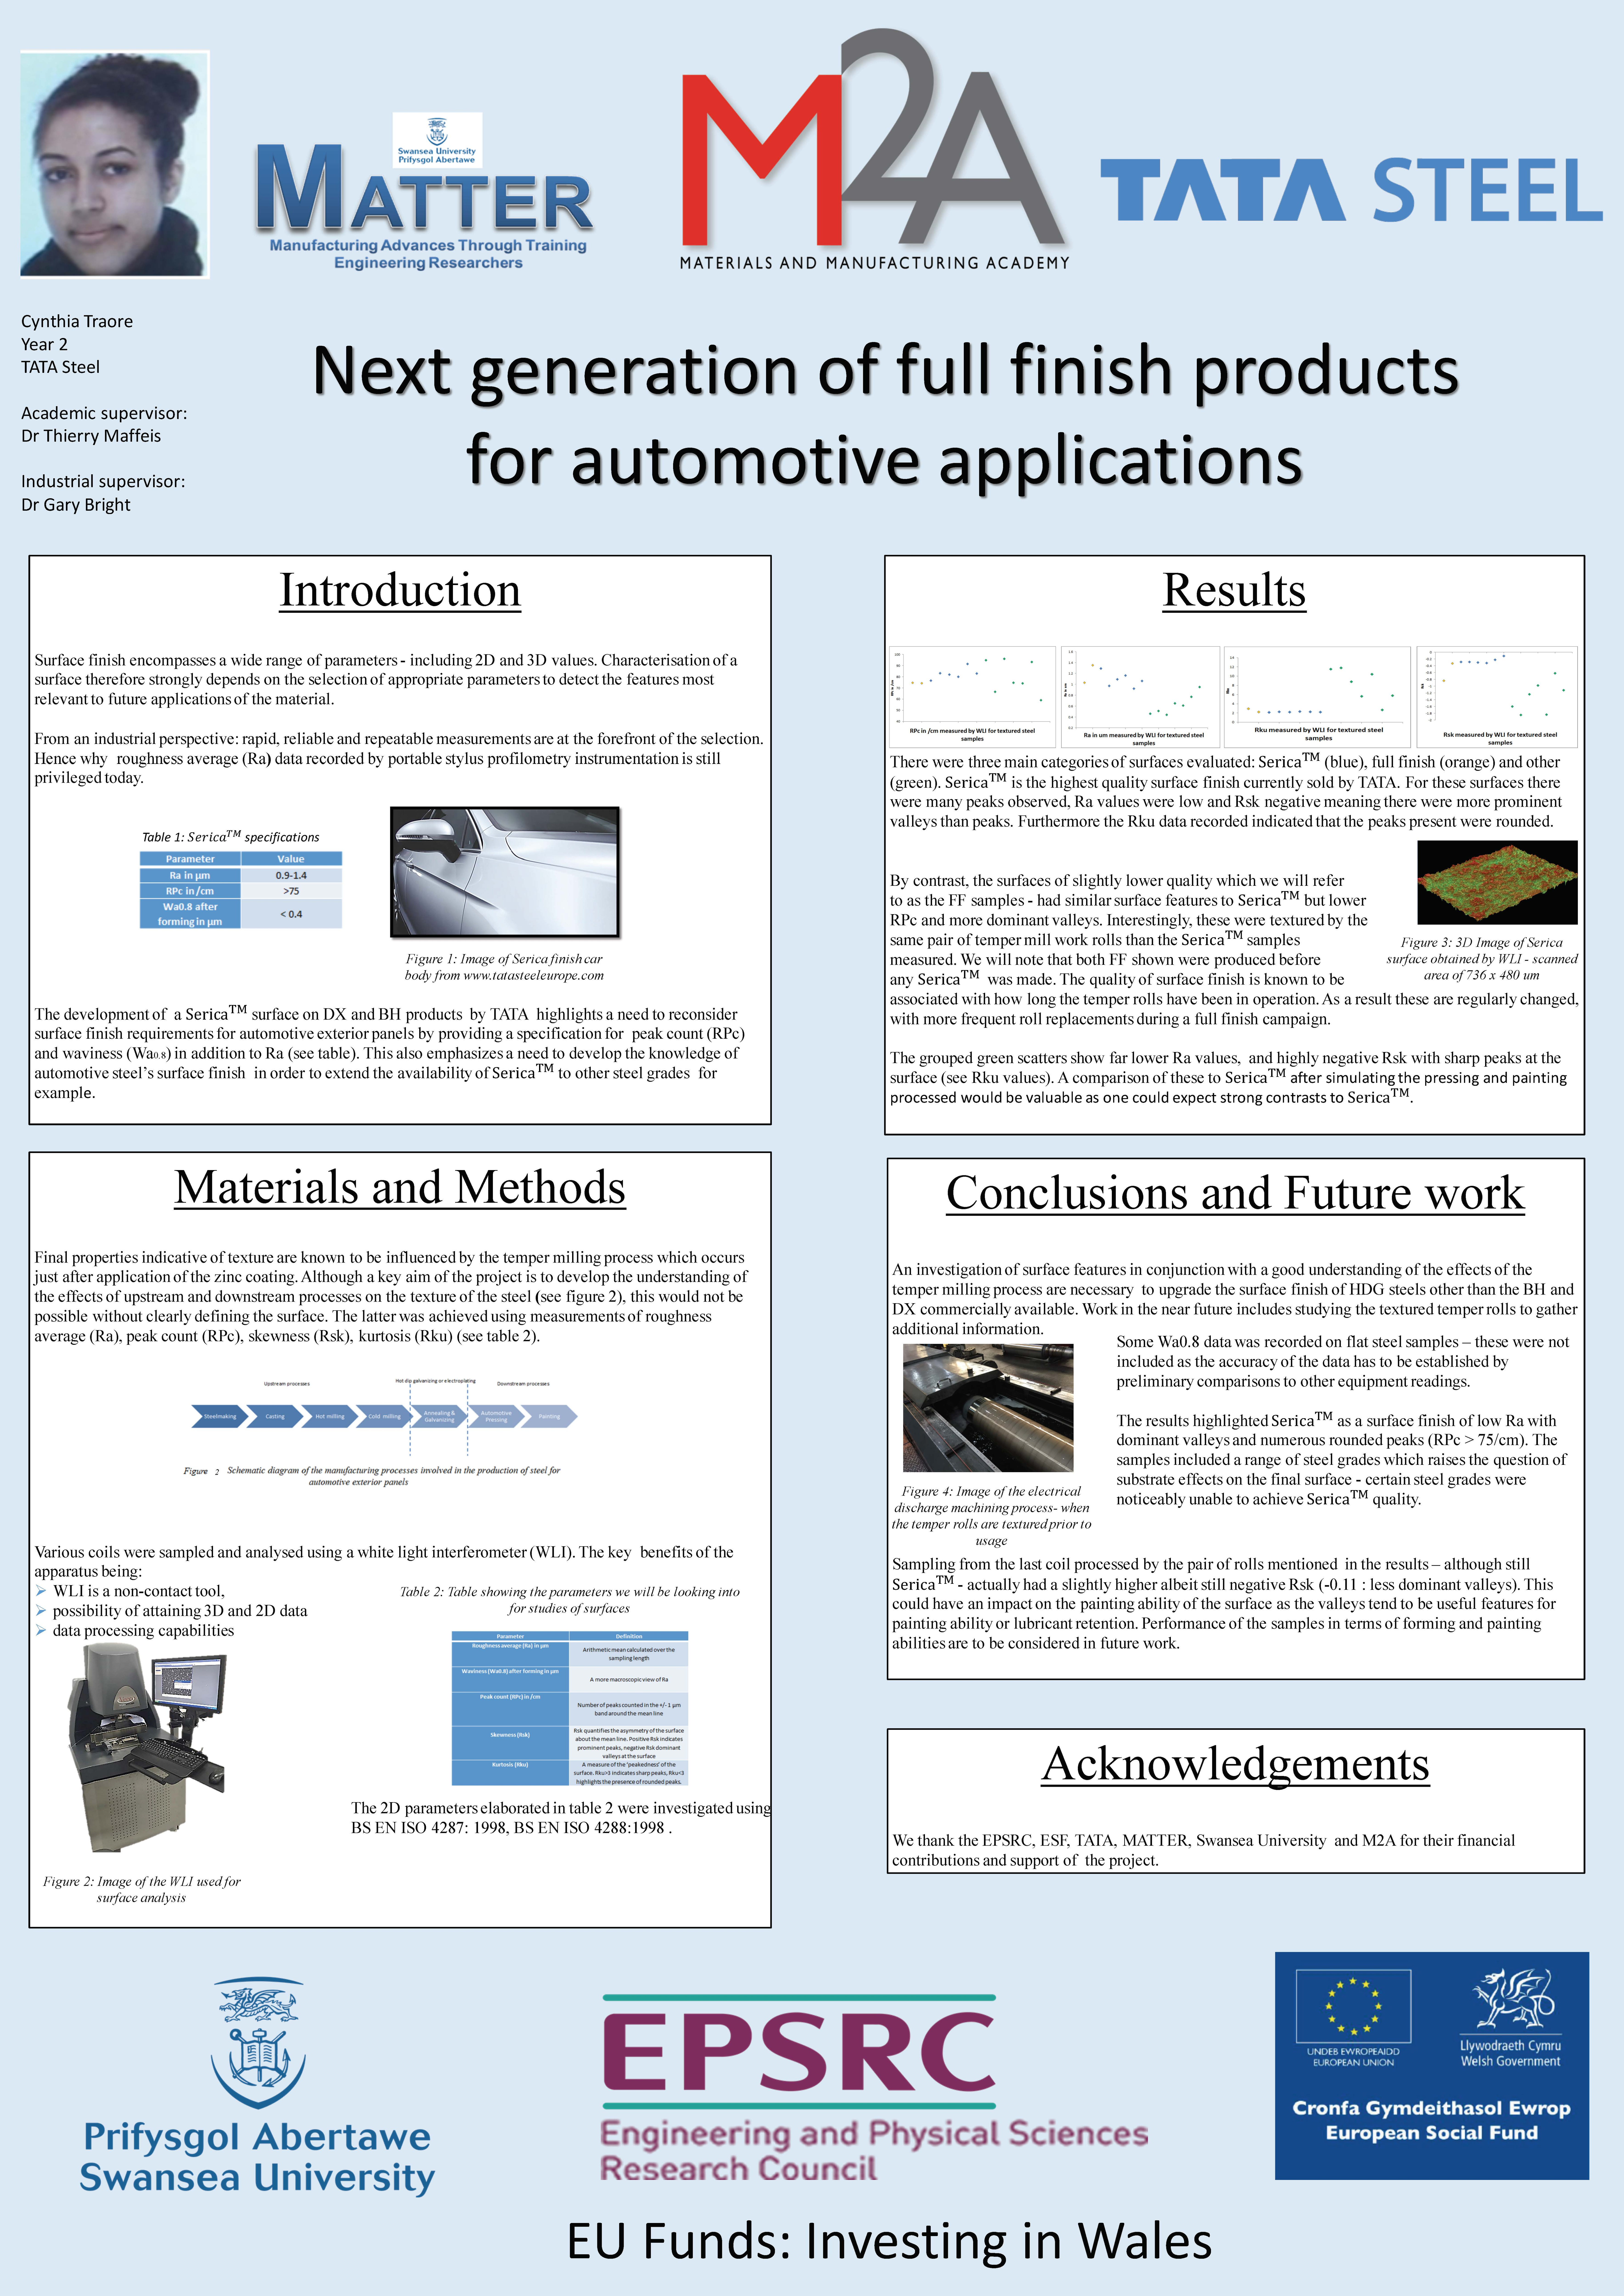 Next generation of full finish products for automotive applications